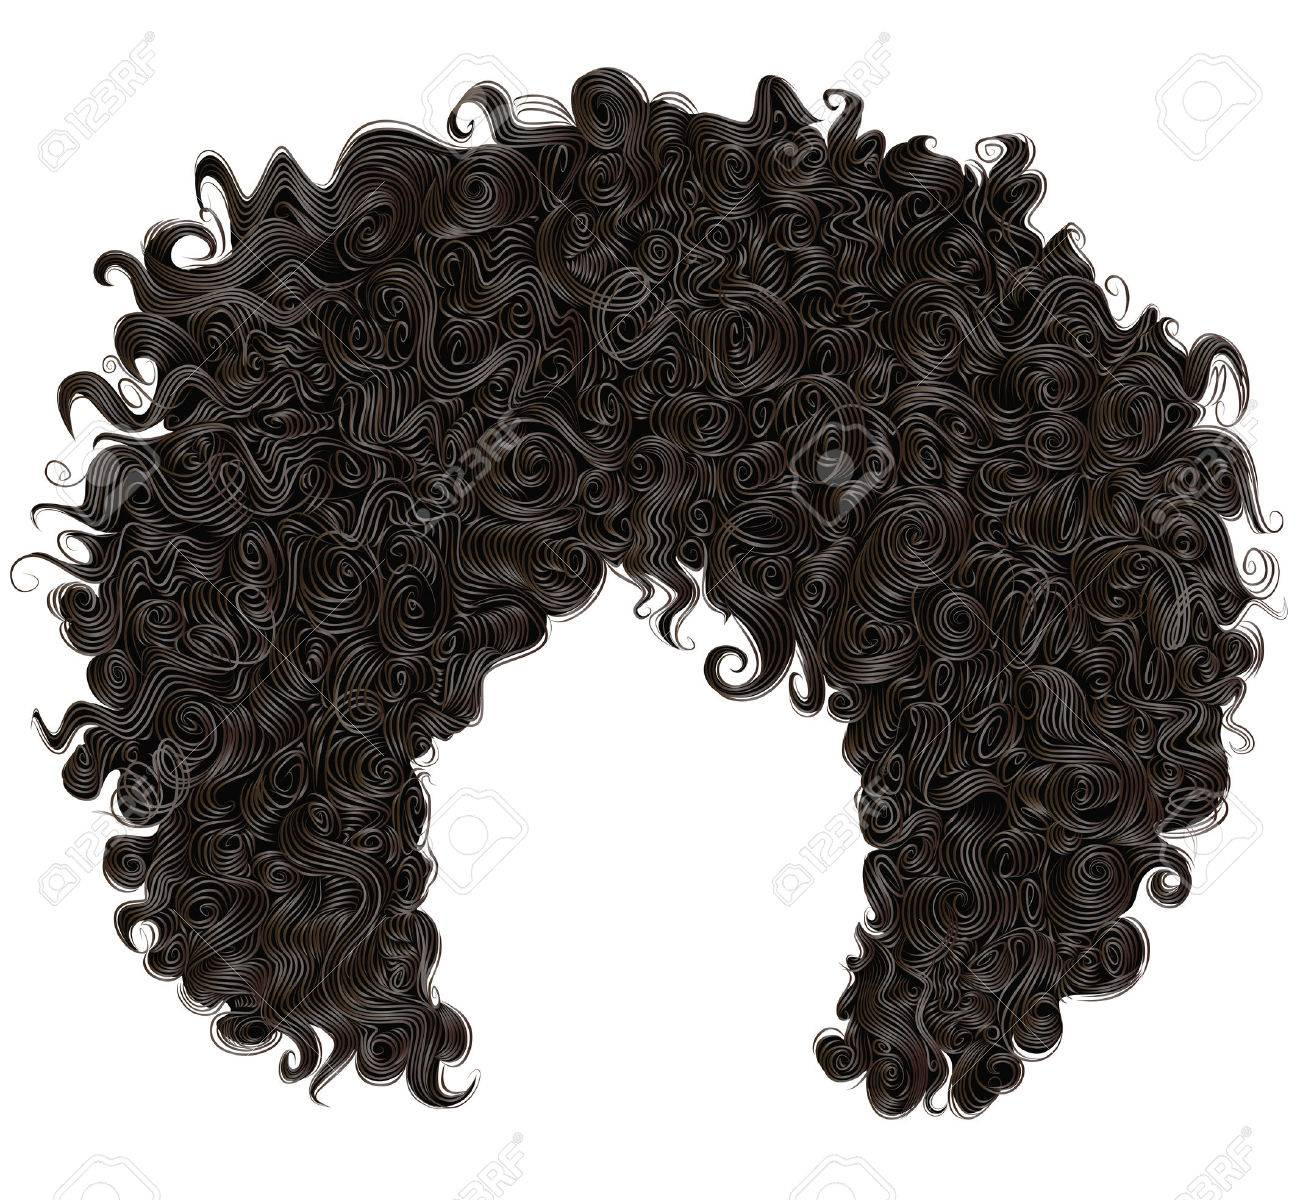 trendy curly african black hair. realistic 3d. fashion beauty style. - 68132475